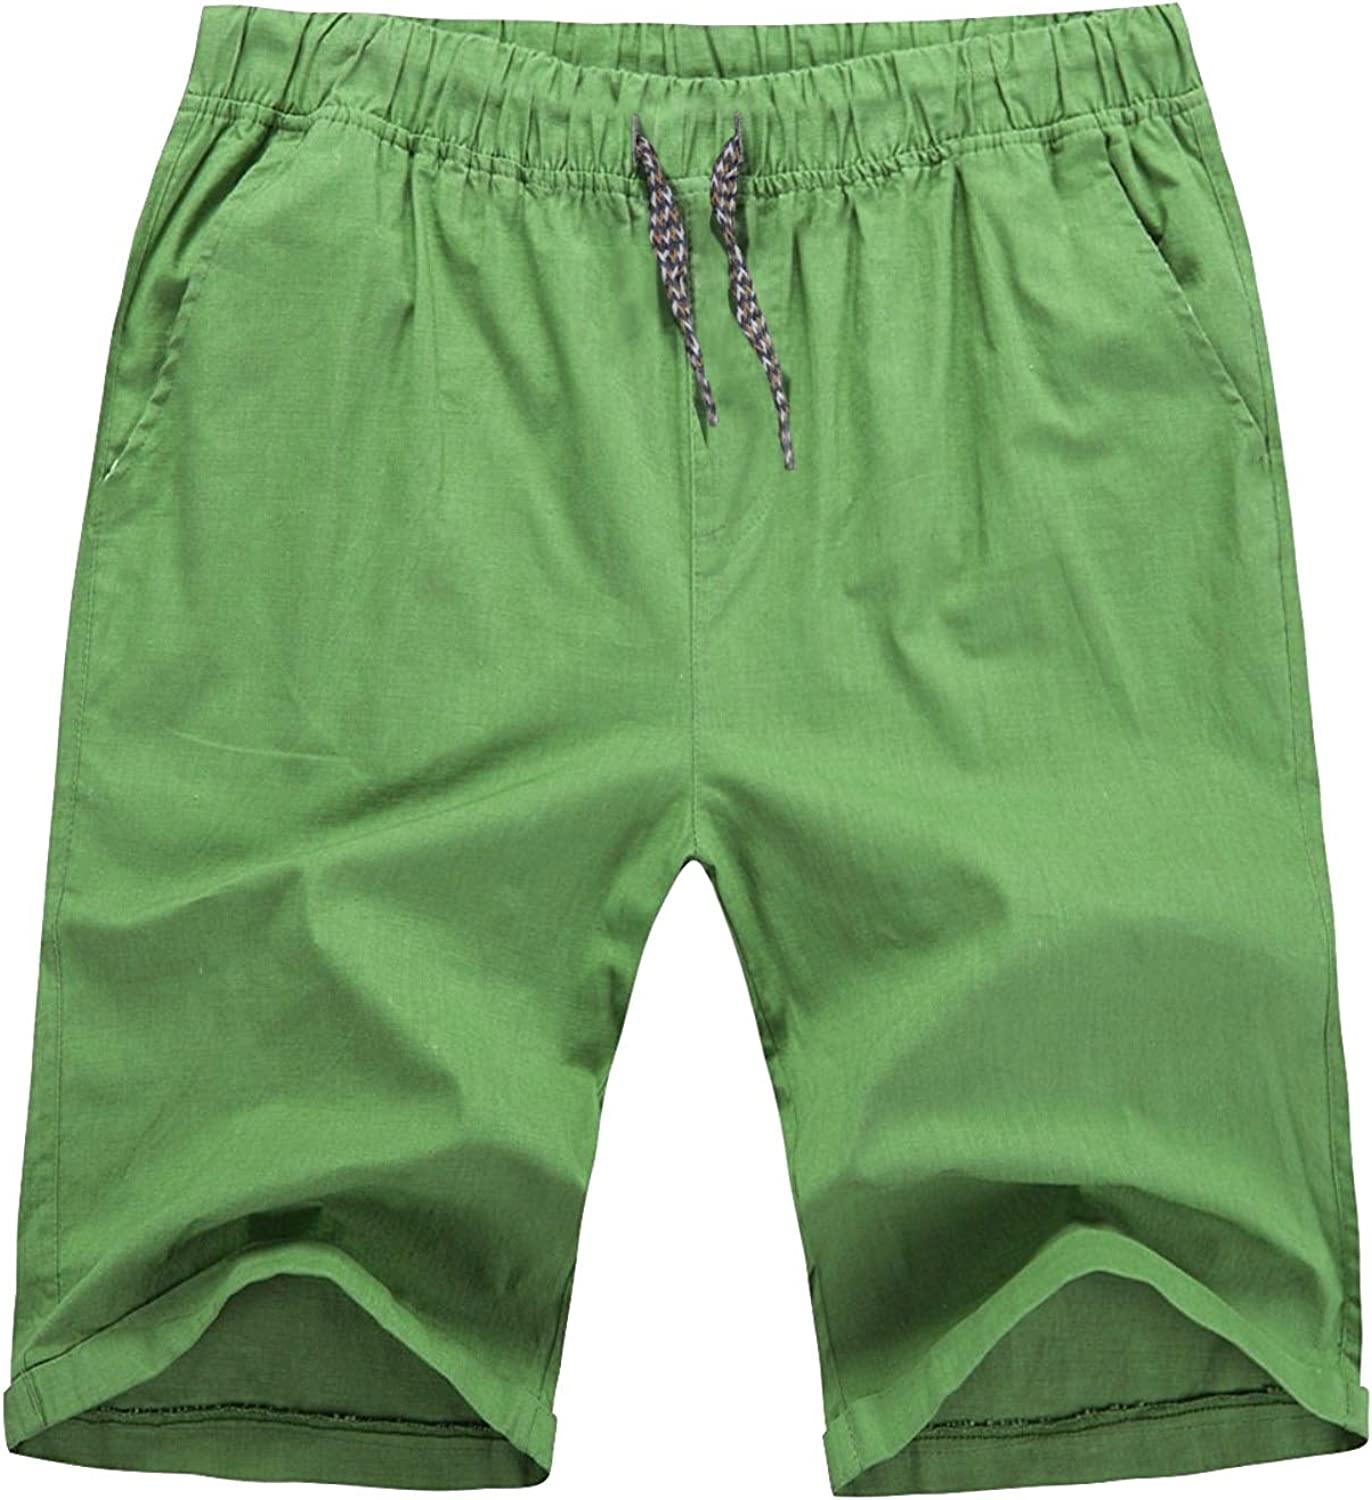 Hat and Beyond Mens Flat Front Summer Shorts Casual Twill Classic Fit